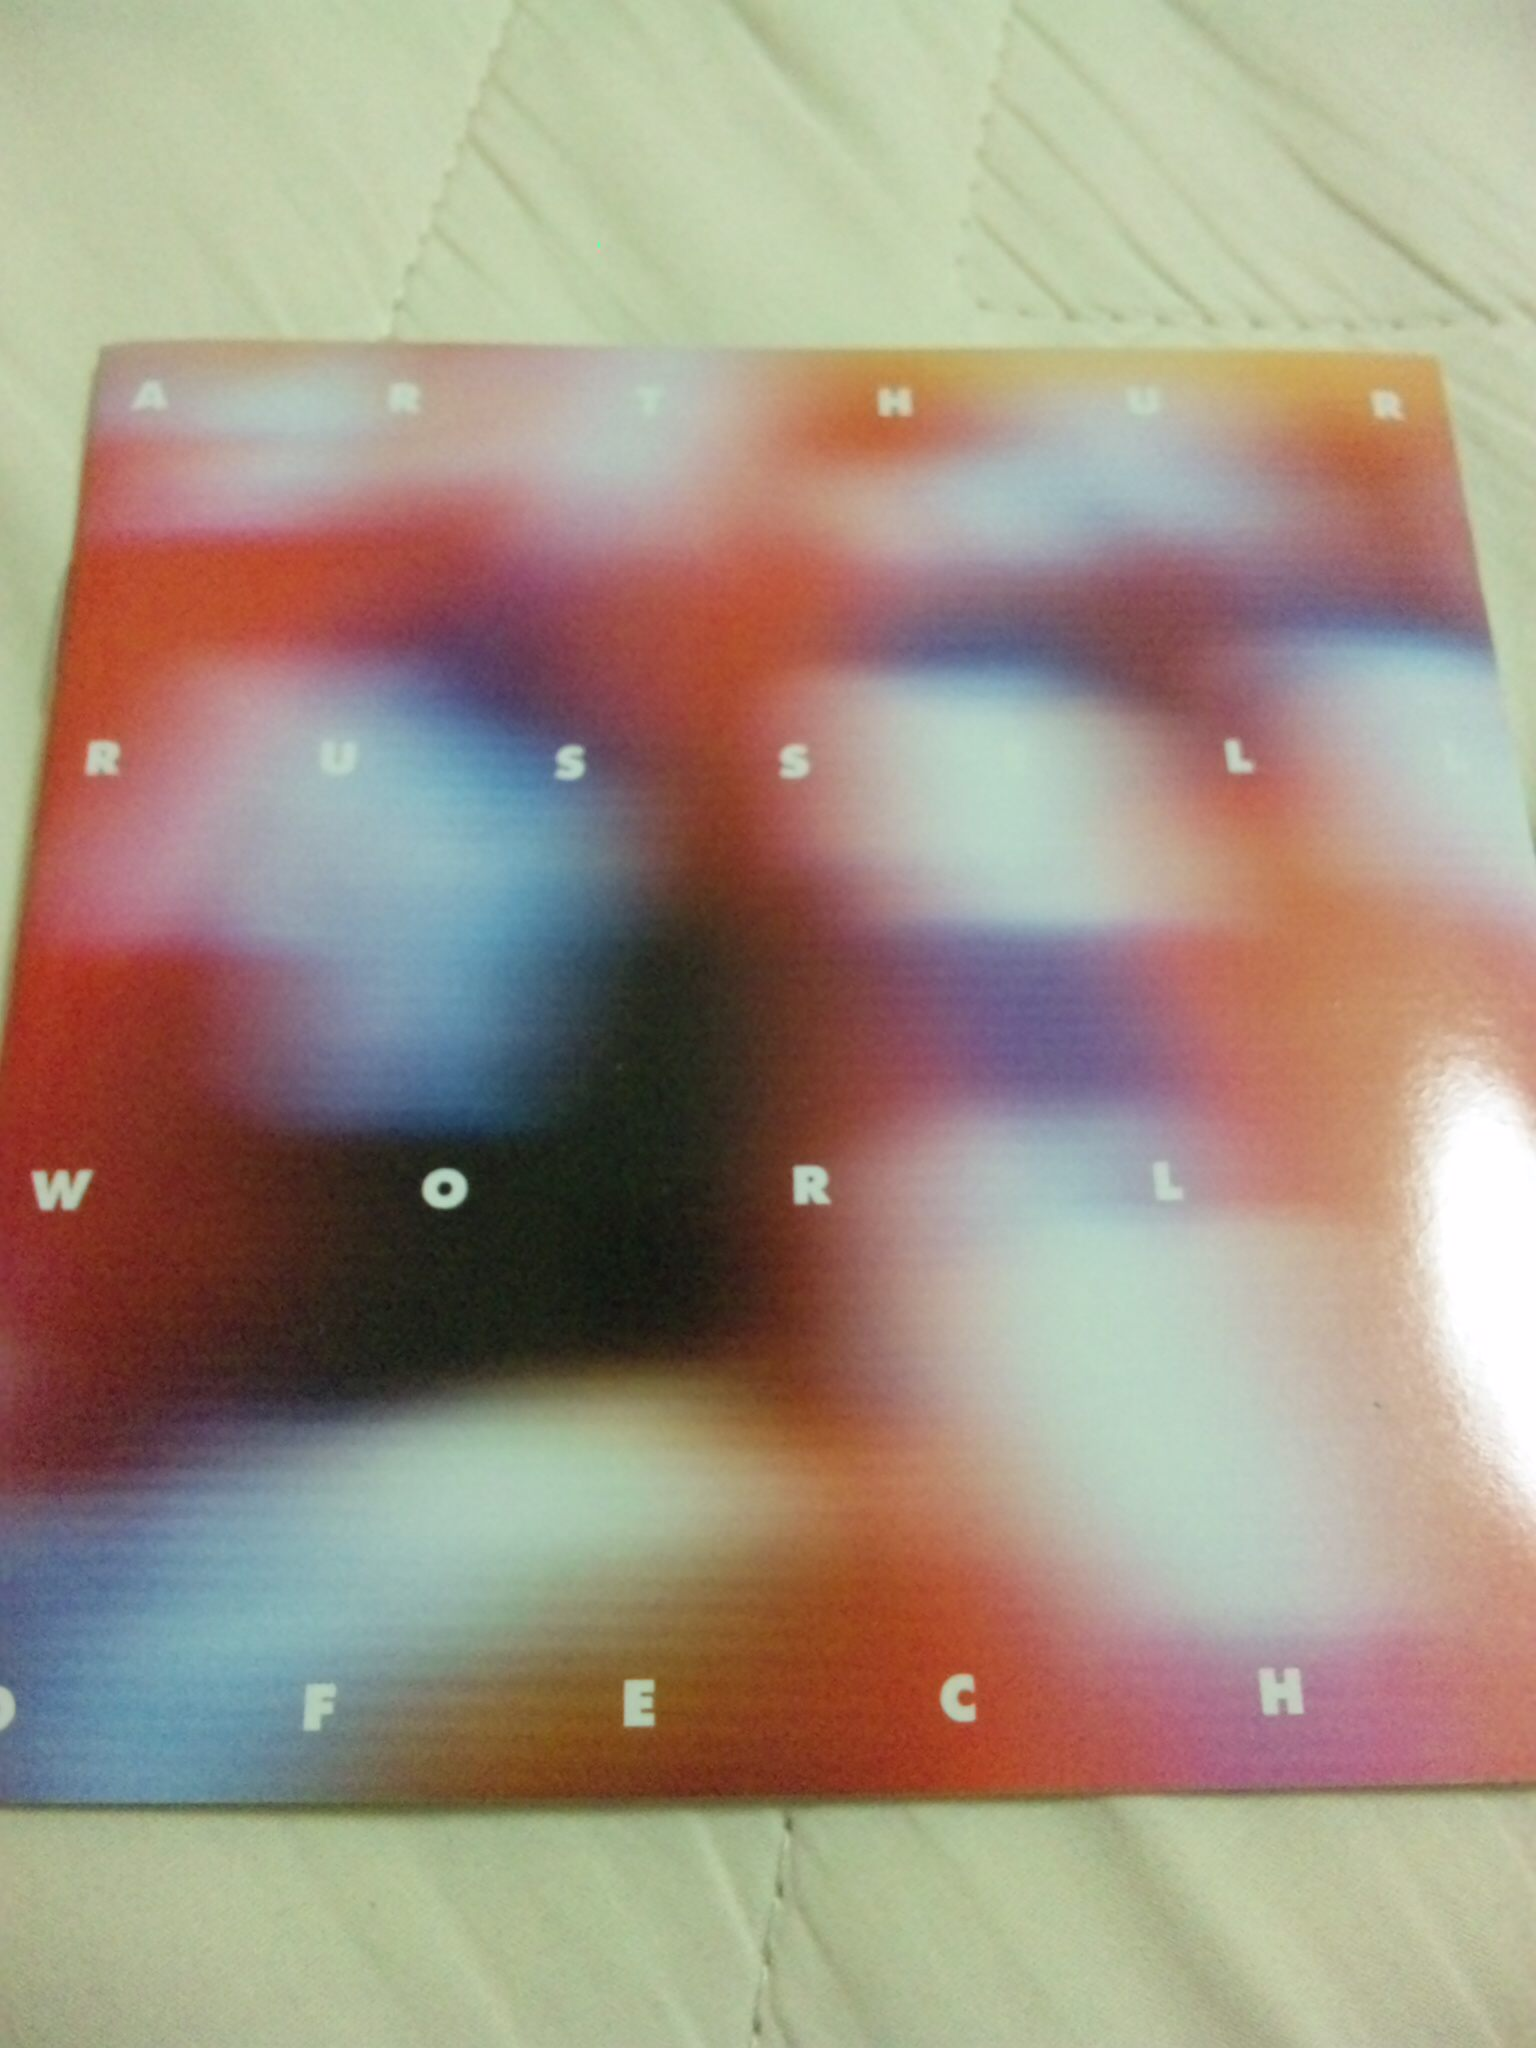 ARTHUR RUSSELL;WORLD OF ECHO